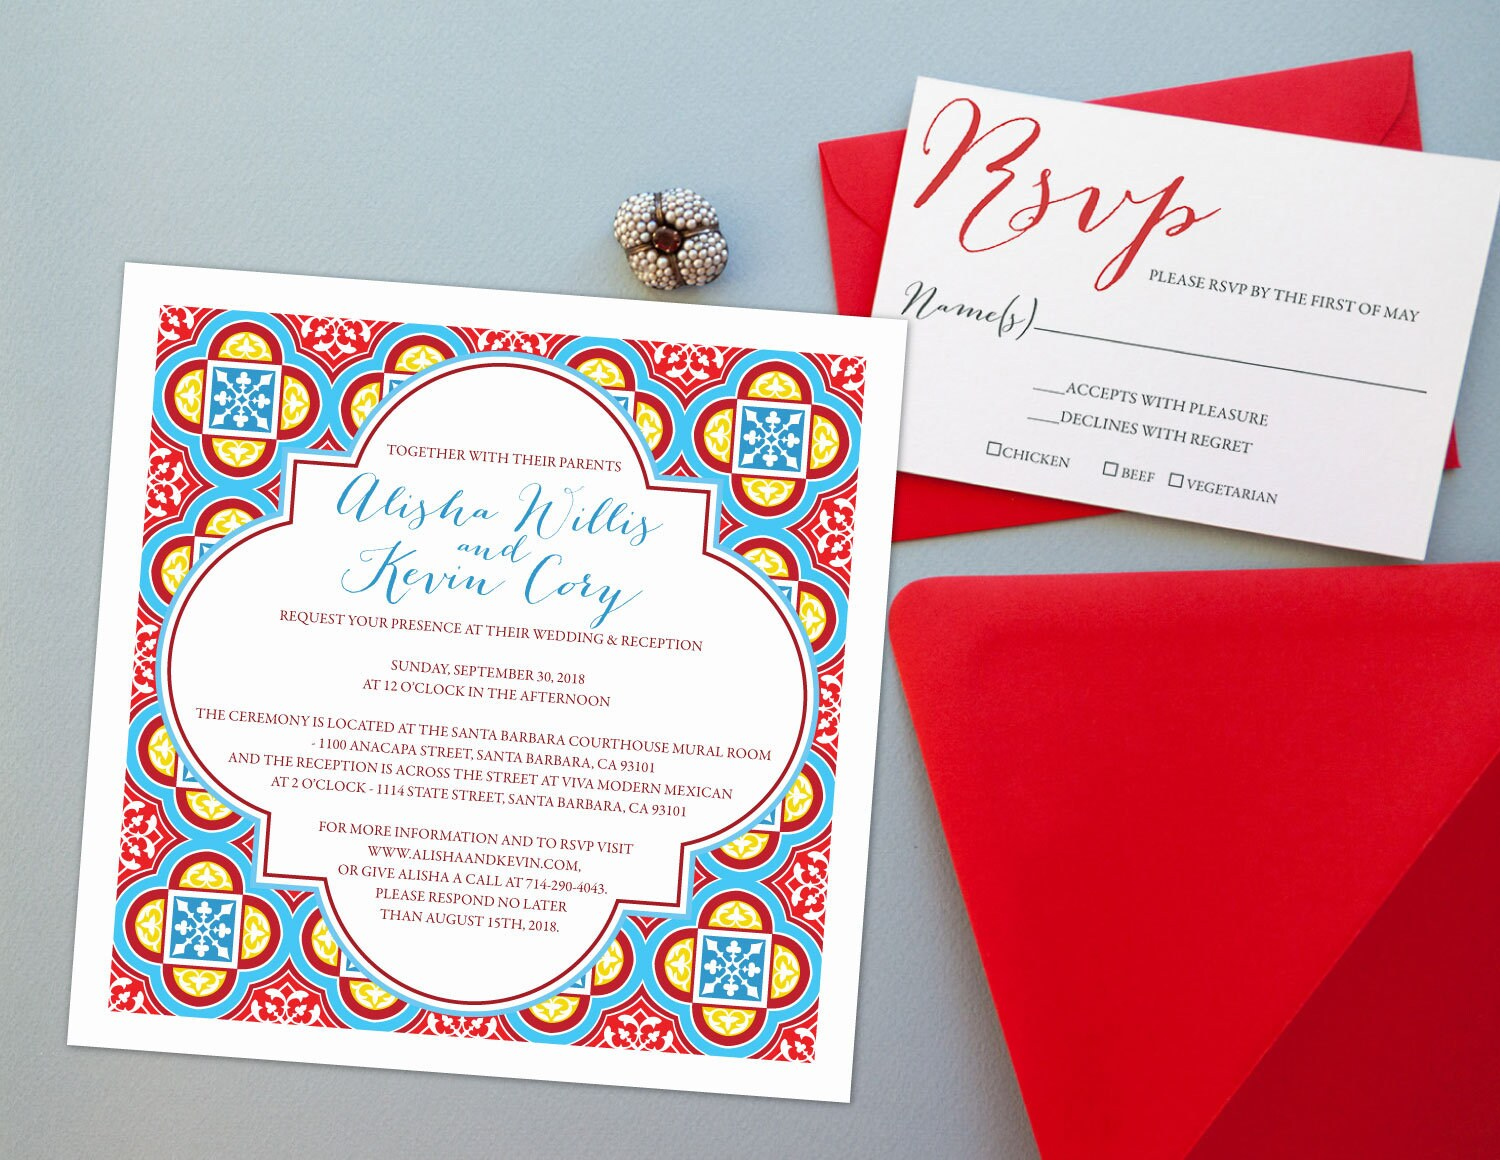 Contemporary How To Reply To Wedding Invitation Frieze - Invitations ...